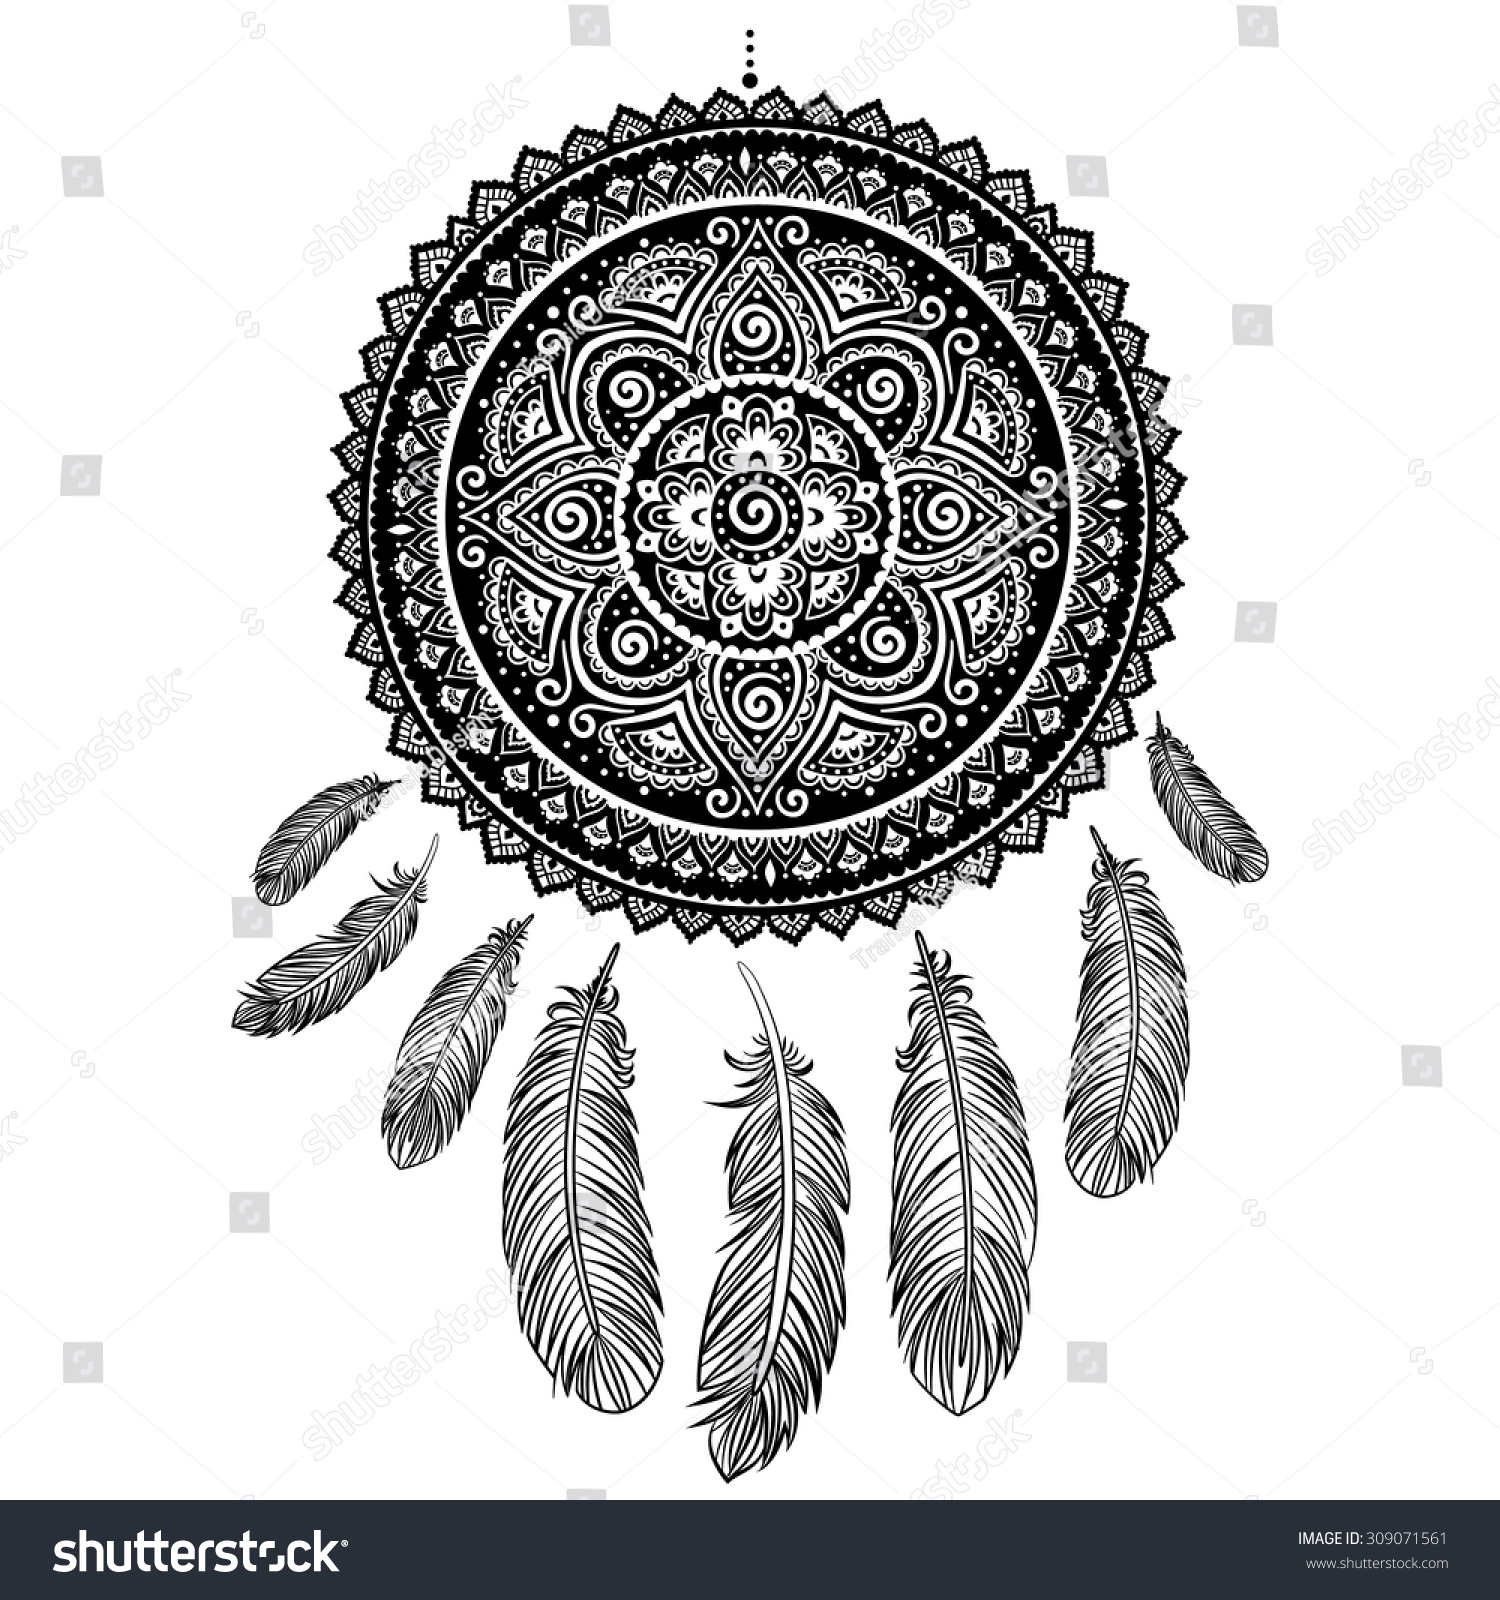 Royalty free ethnic american indian dream catcher 309071561 stock ethnic american indian dream catcher can be used as a greeting card 309071561 m4hsunfo